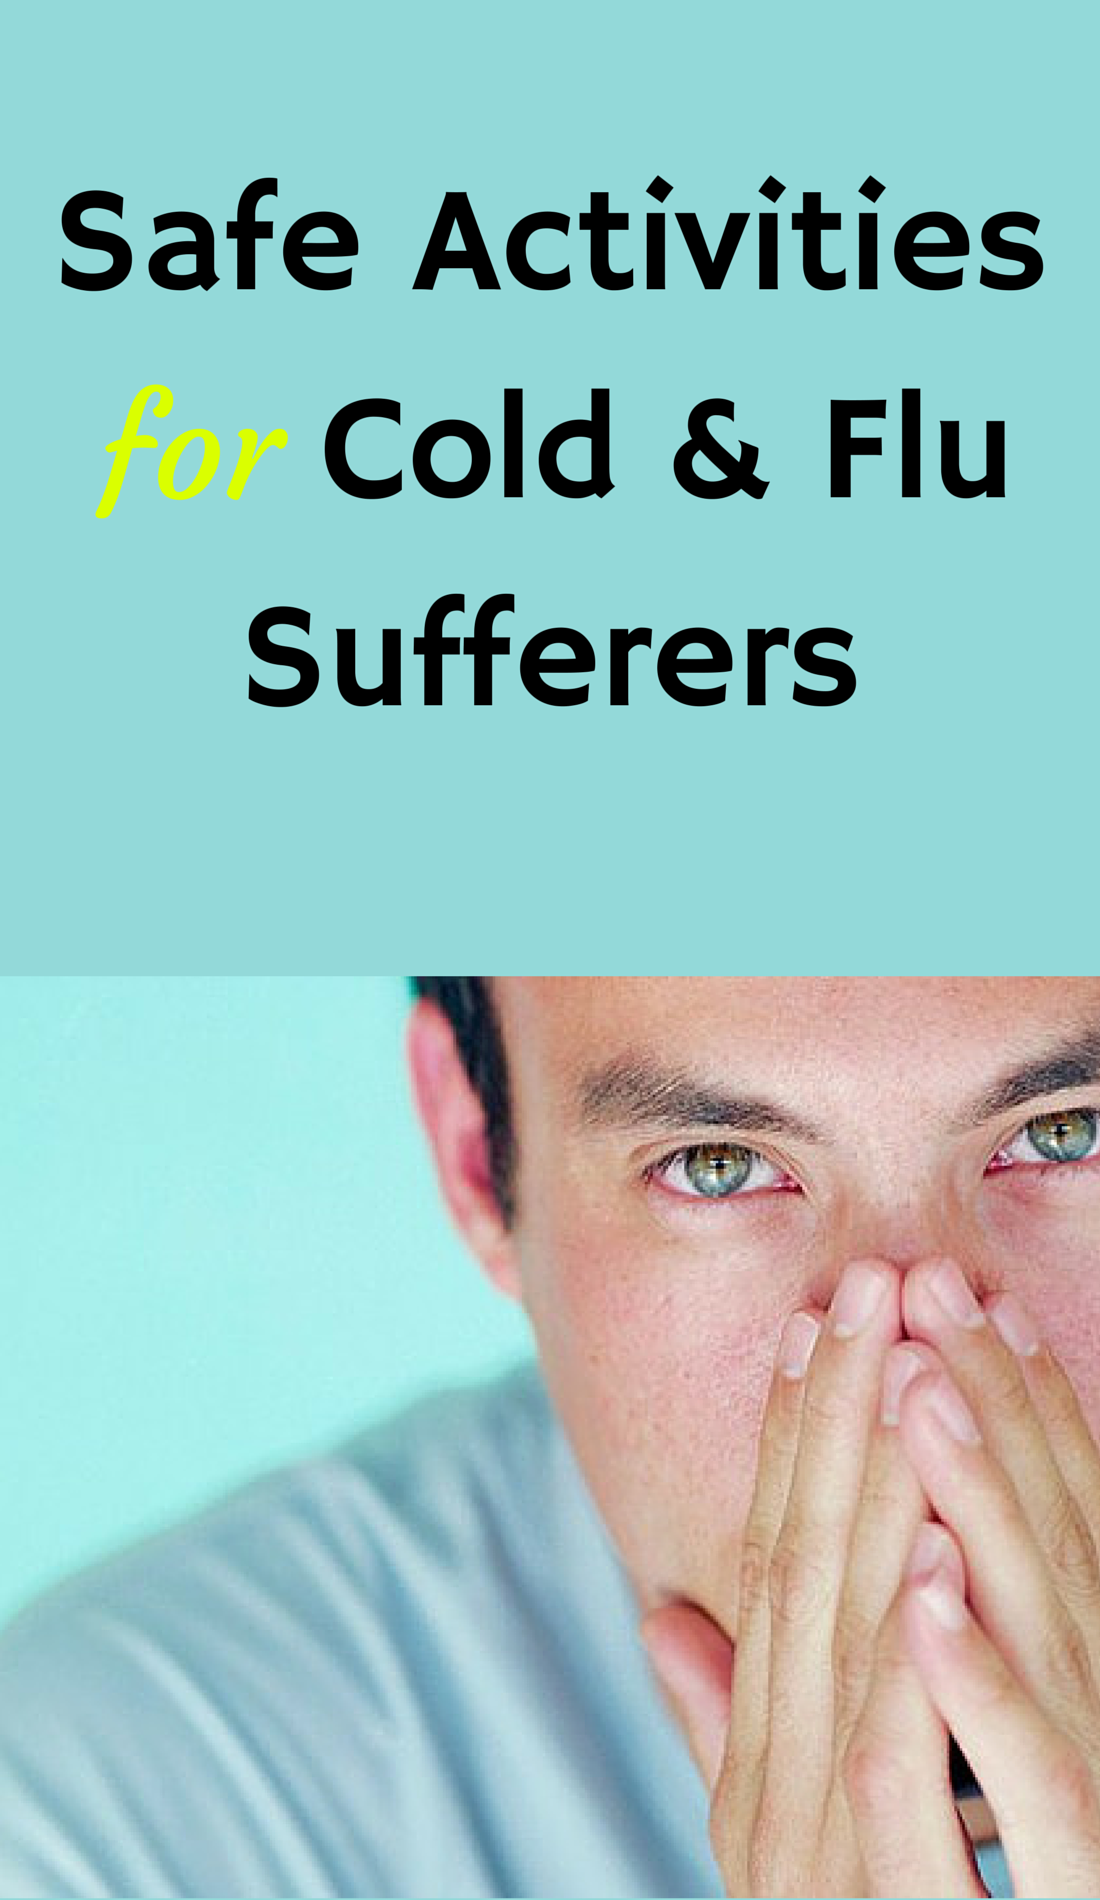 Safe Activities for Cold and Flu Sufferers